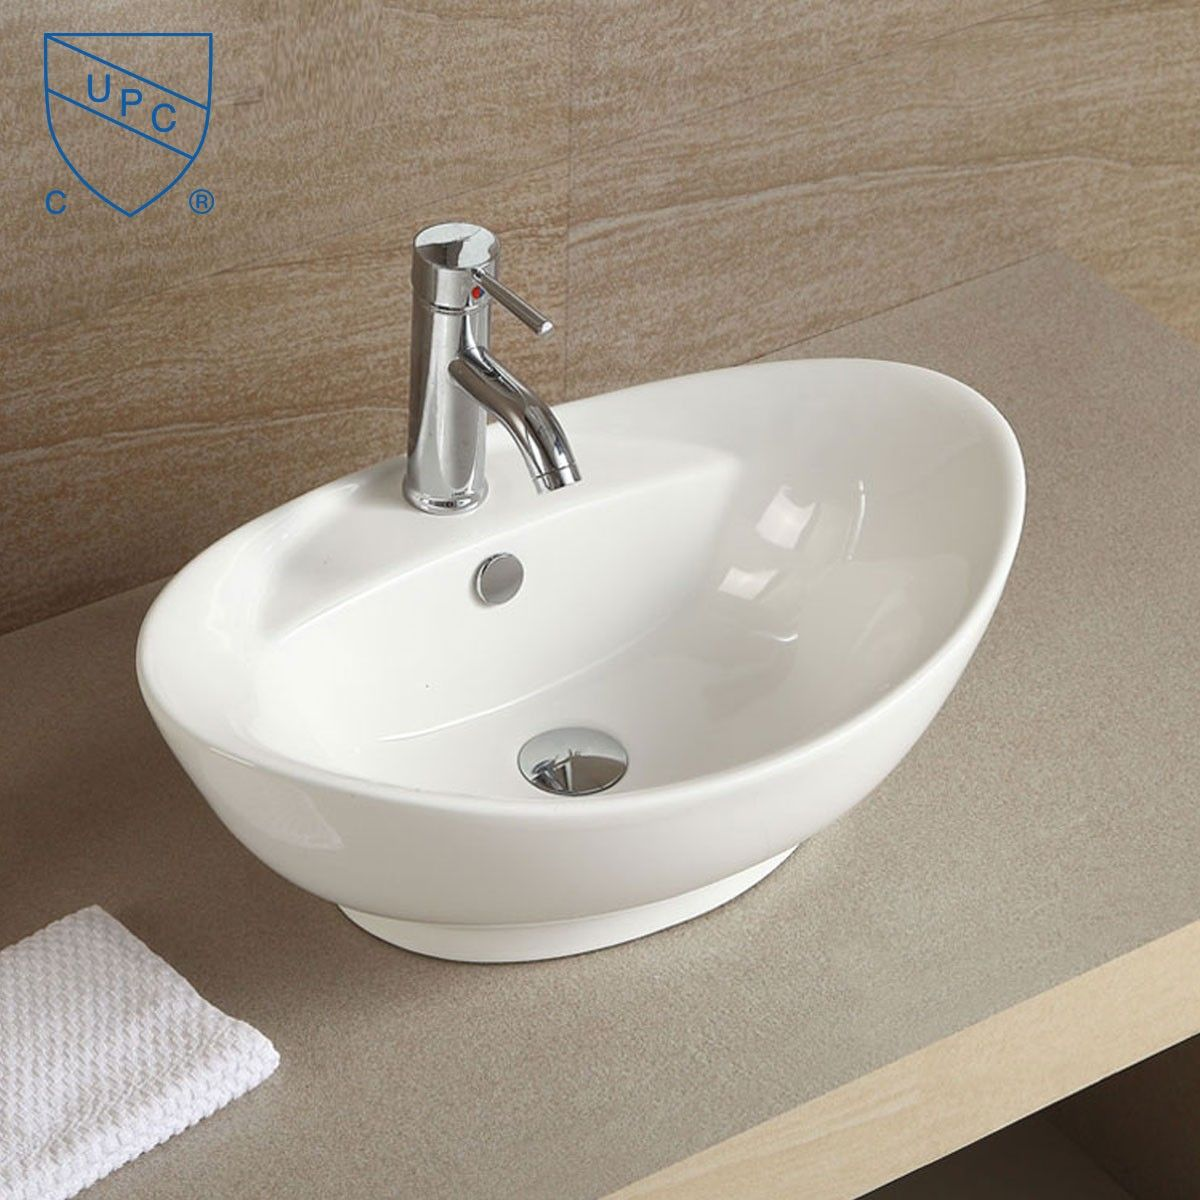 Above counter bathroom sinks canada - Decoraport White Oval Ceramic Above Counter Vessel Sink Cl 1038